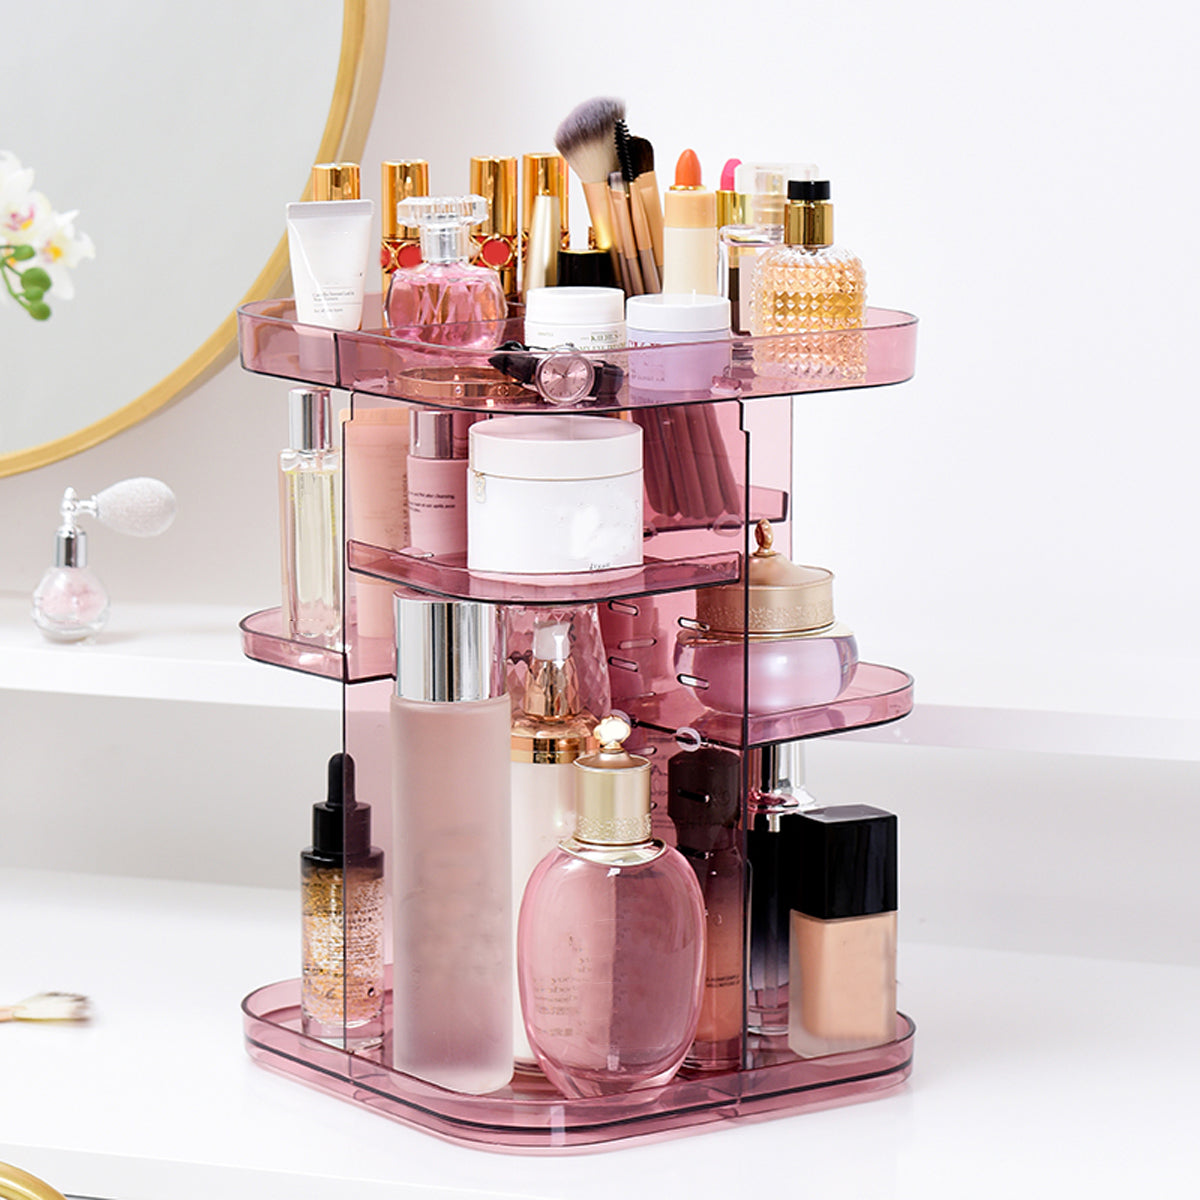 Adjustable 360° Rotating Makeup Jewelry Box Square Storage Rack Organizer Stand Display